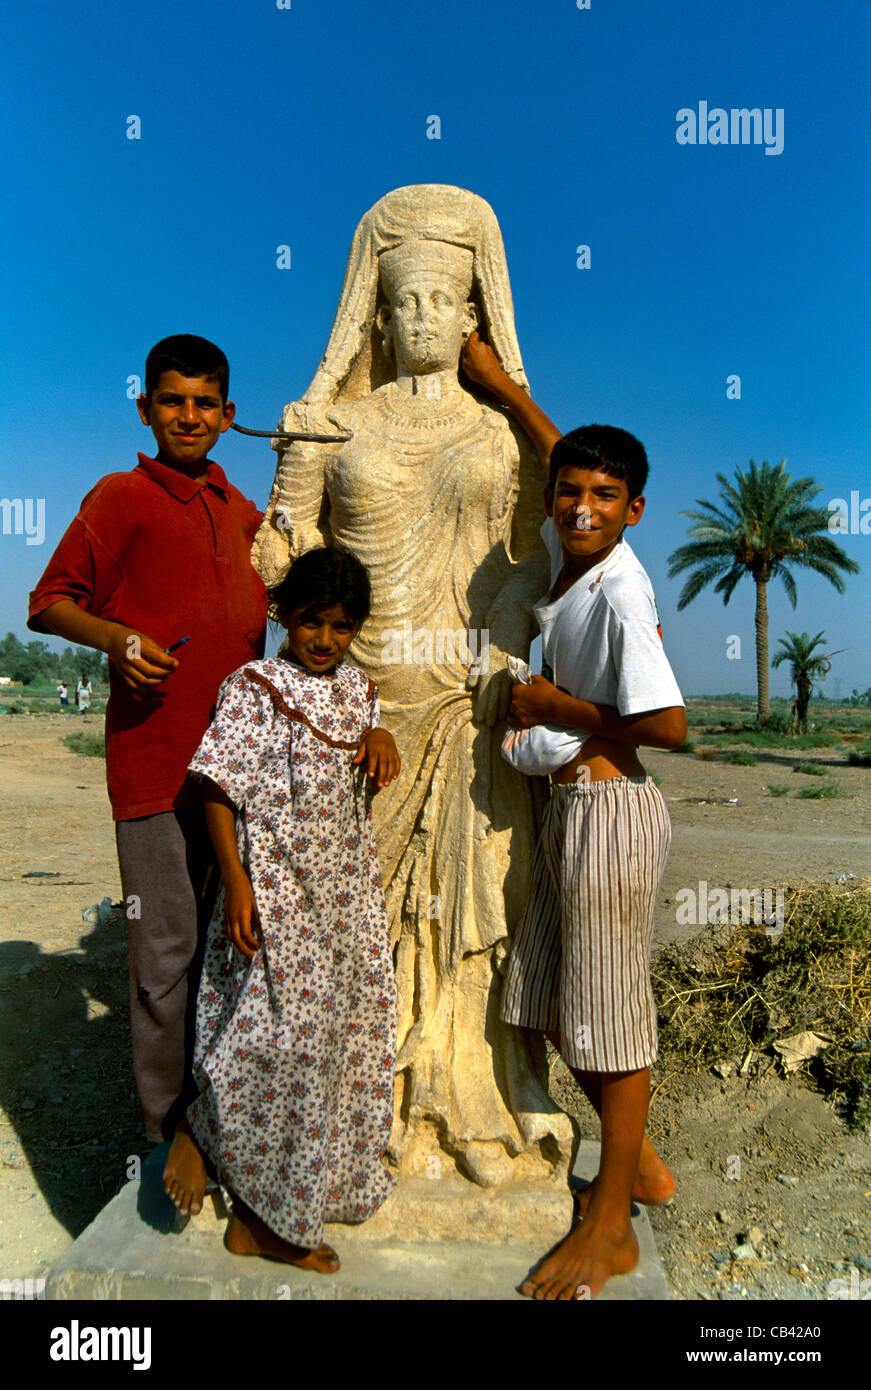 Iraq Ctesphone Children With Statue Of Queen From Hatra Al Mada'in - Stock Image